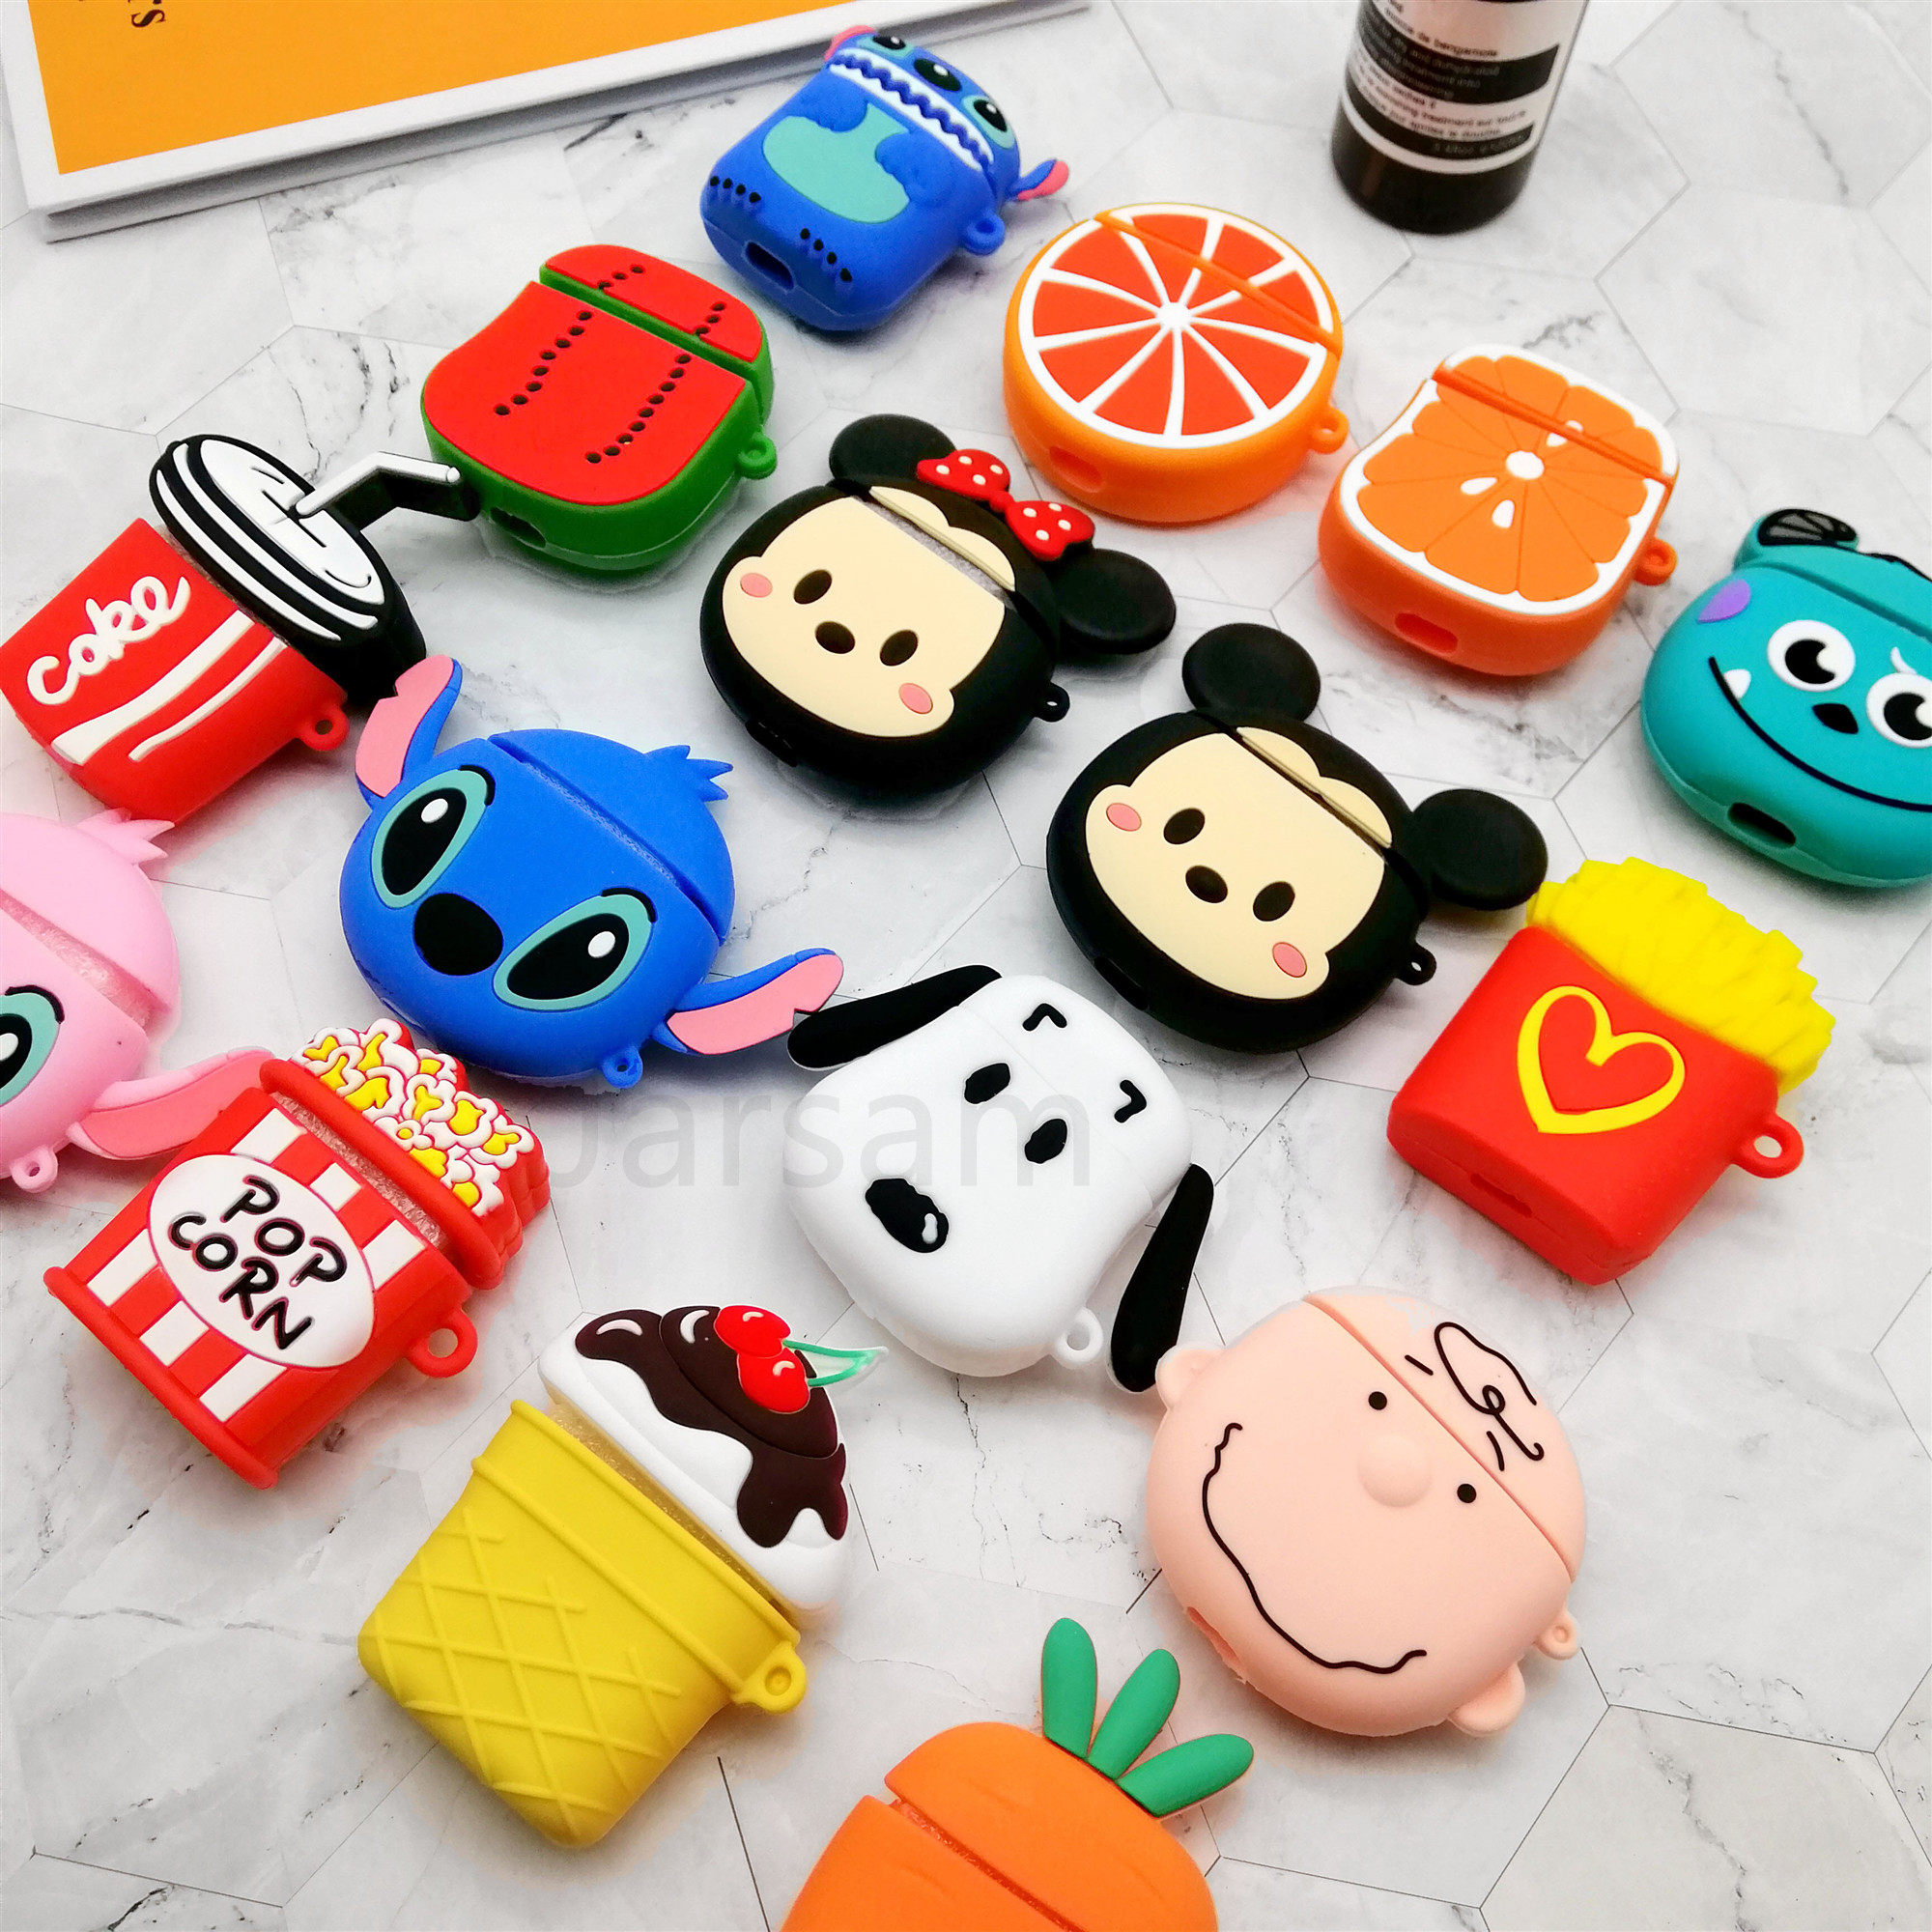 For Airpods Case Silicone Cartoon Cover For Apple Air Pods Cute Earphone Case 3D Headphone Case For Earpods Accessories